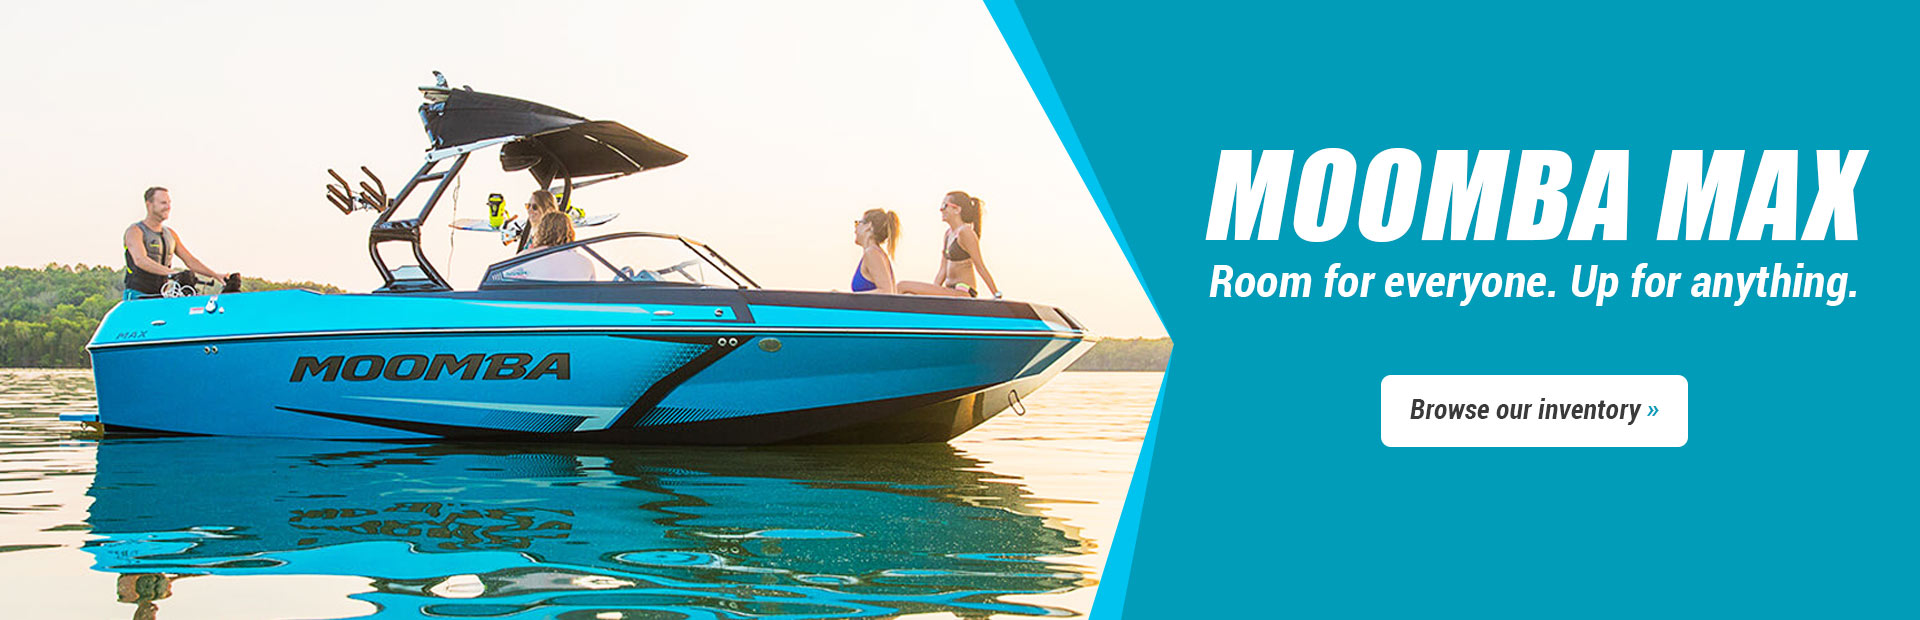 Moomba Max Boats: Click here to browse our inventory.